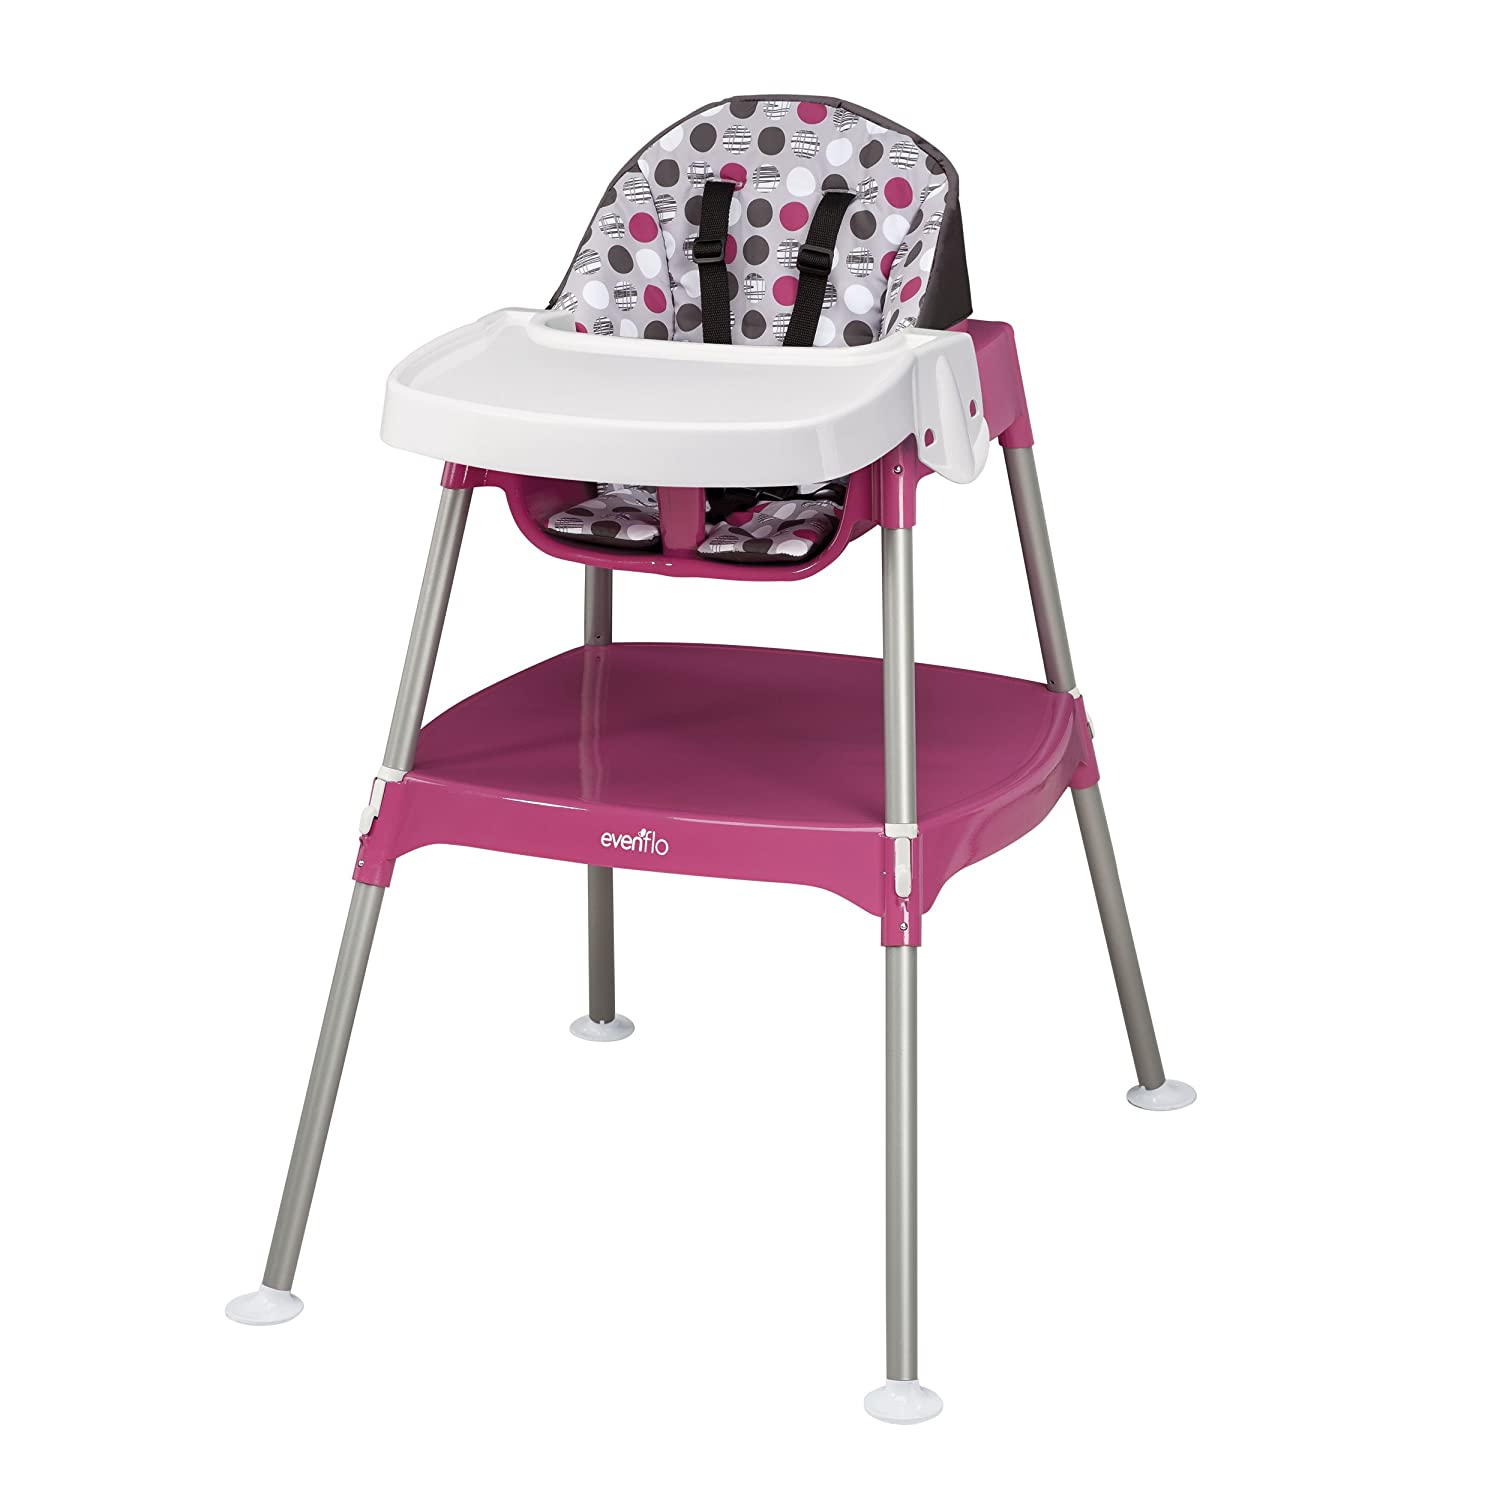 Evenflo Convertible High Chair, Dottie Lime 28111259